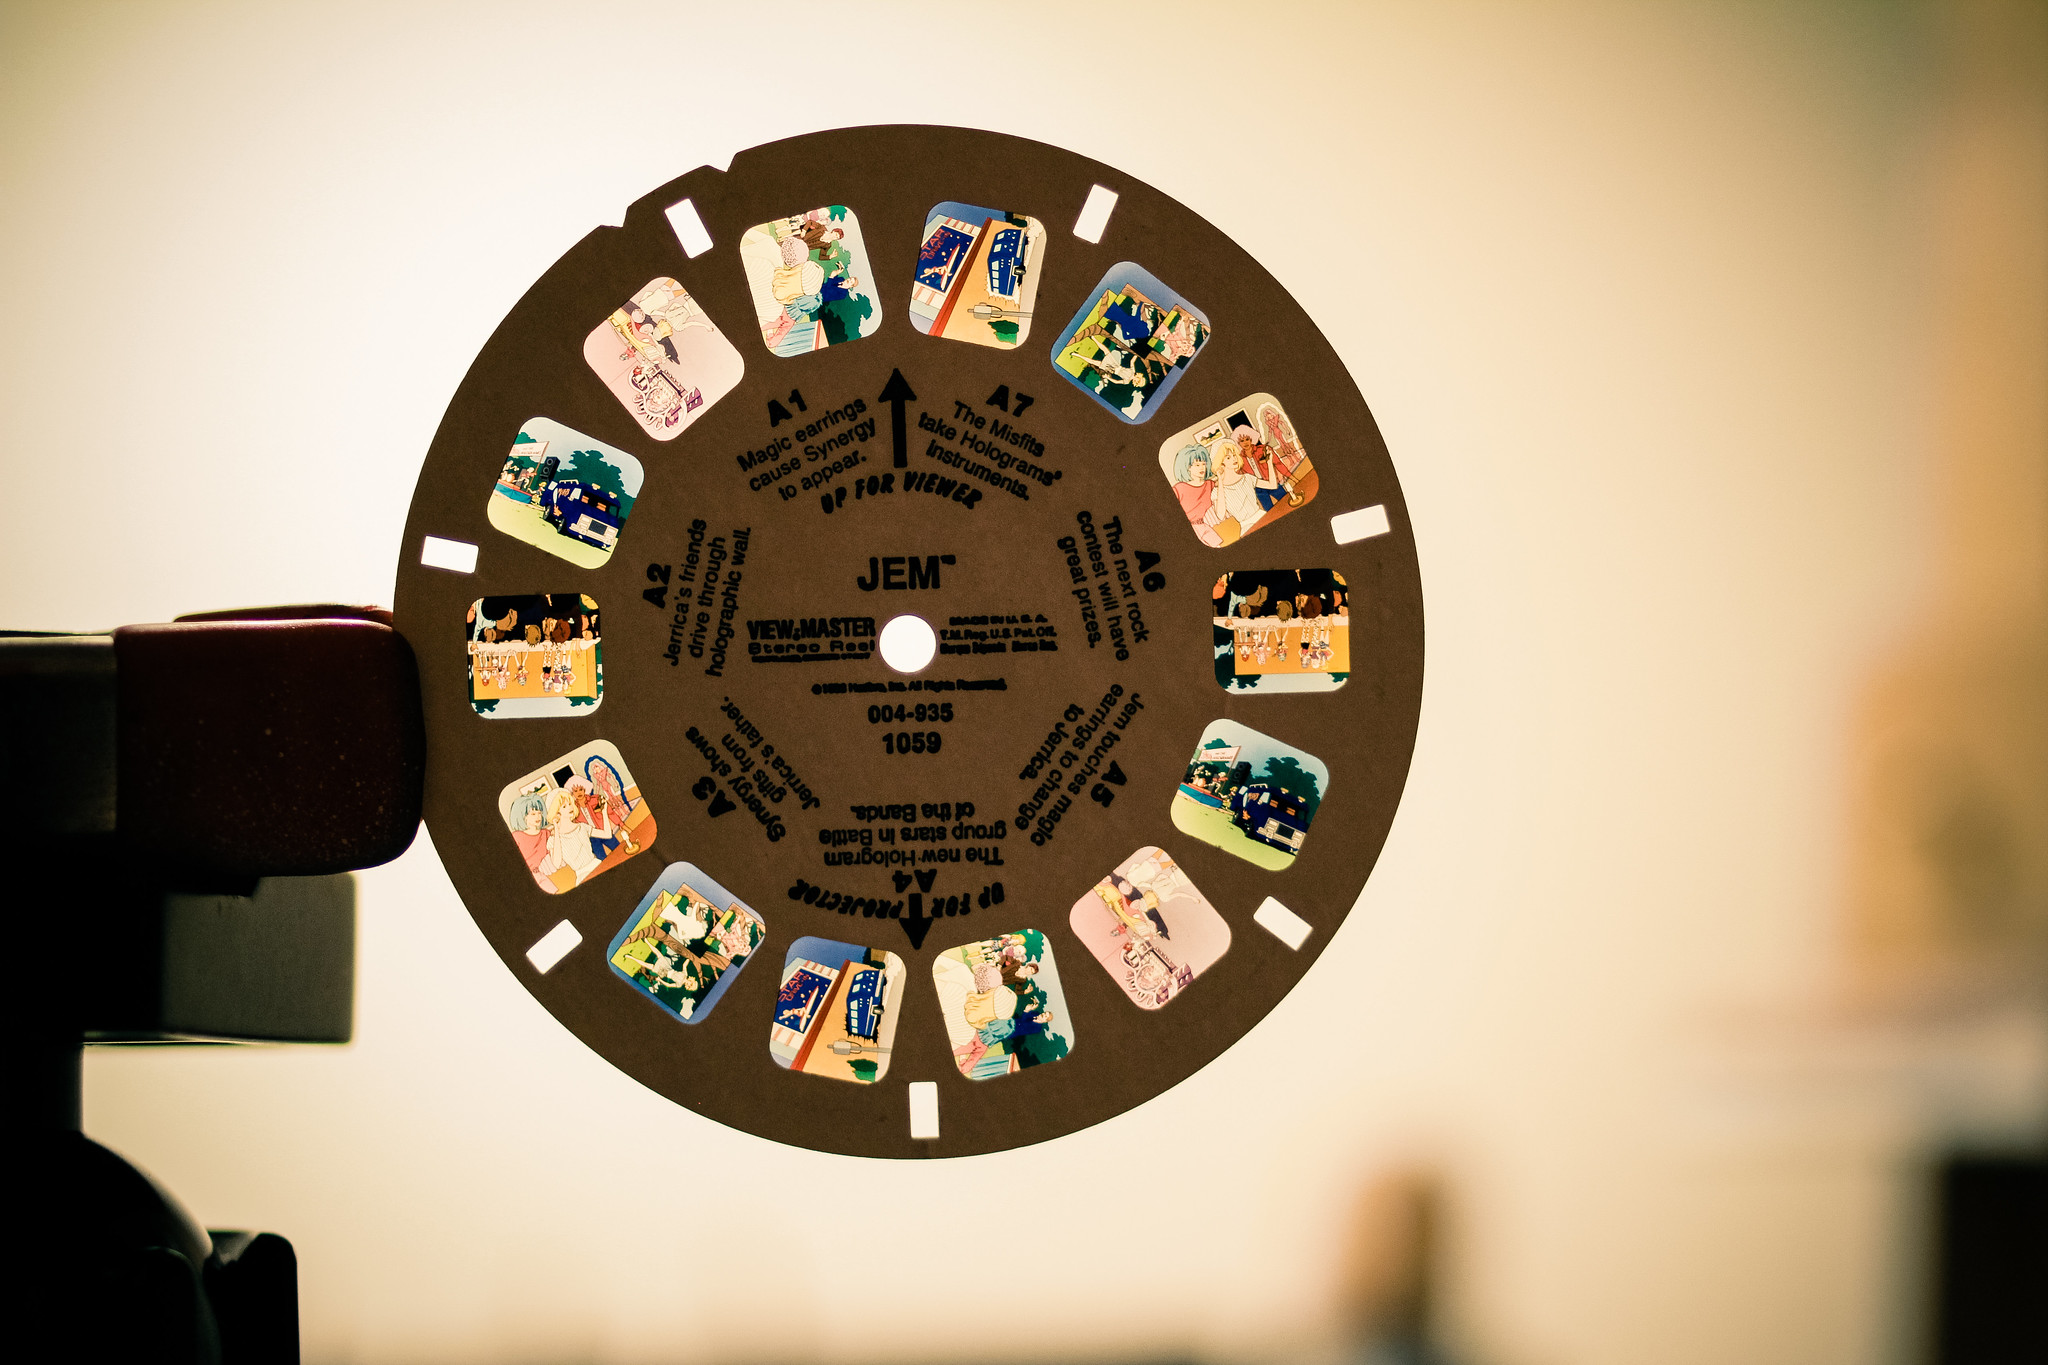 Jem Viewmaster slide